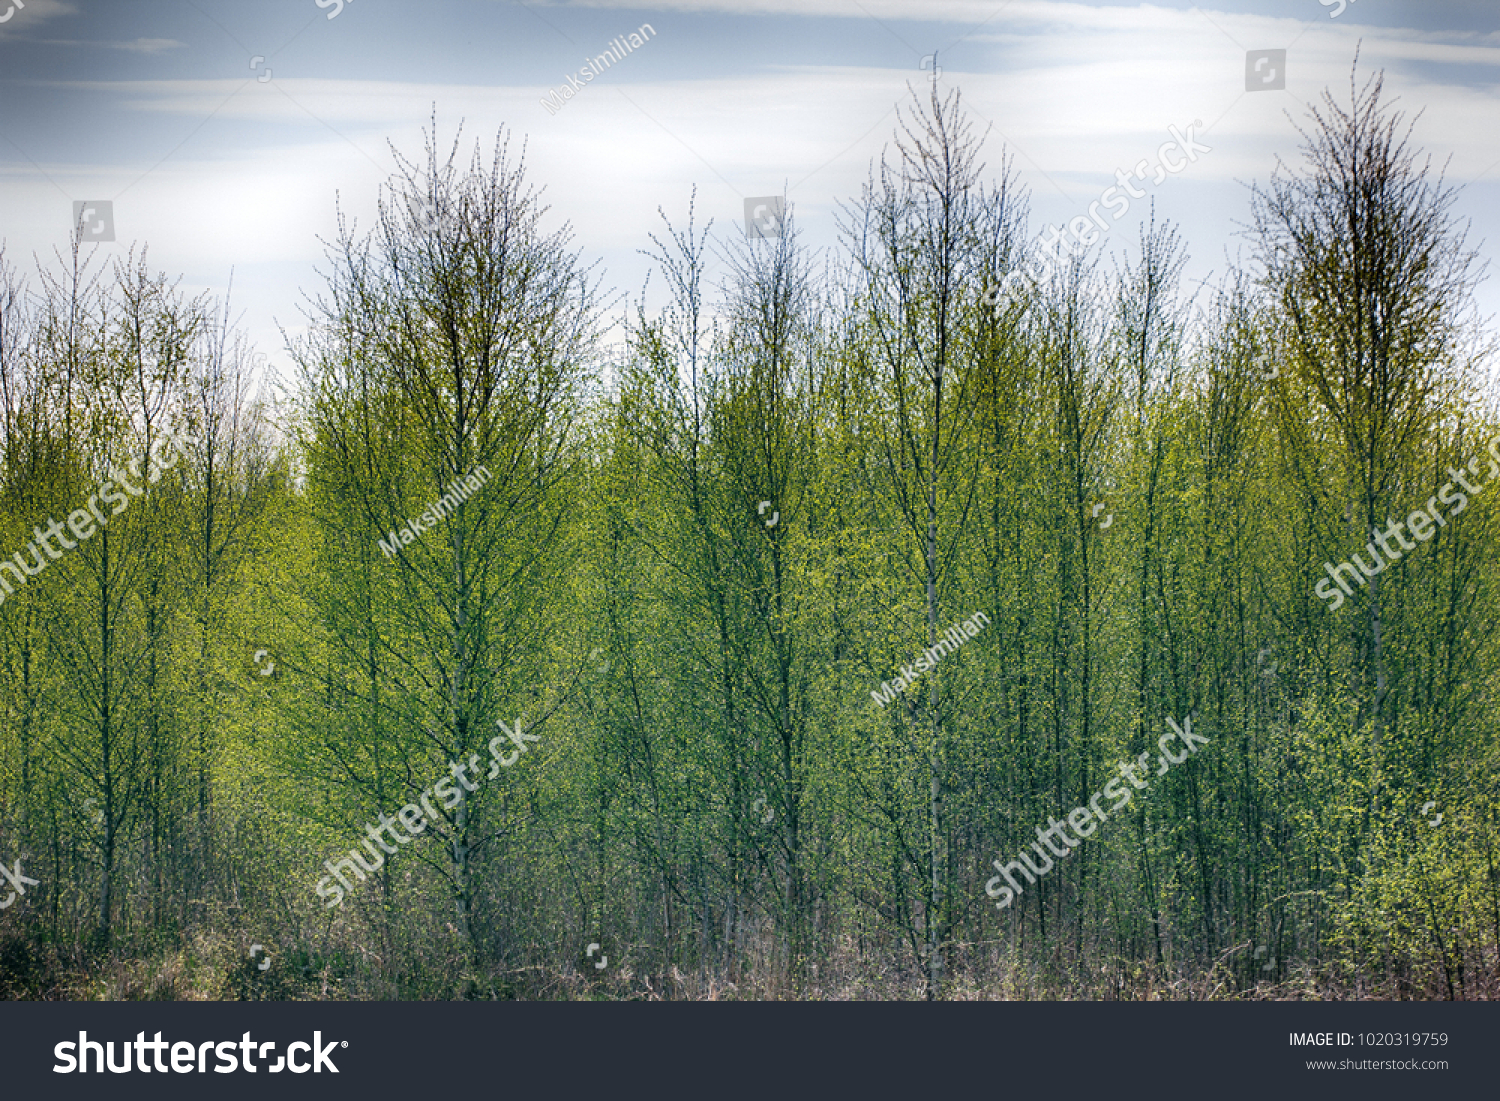 Pleasing Man Spring Young Bright Green Stock Photo 1020319759 ...